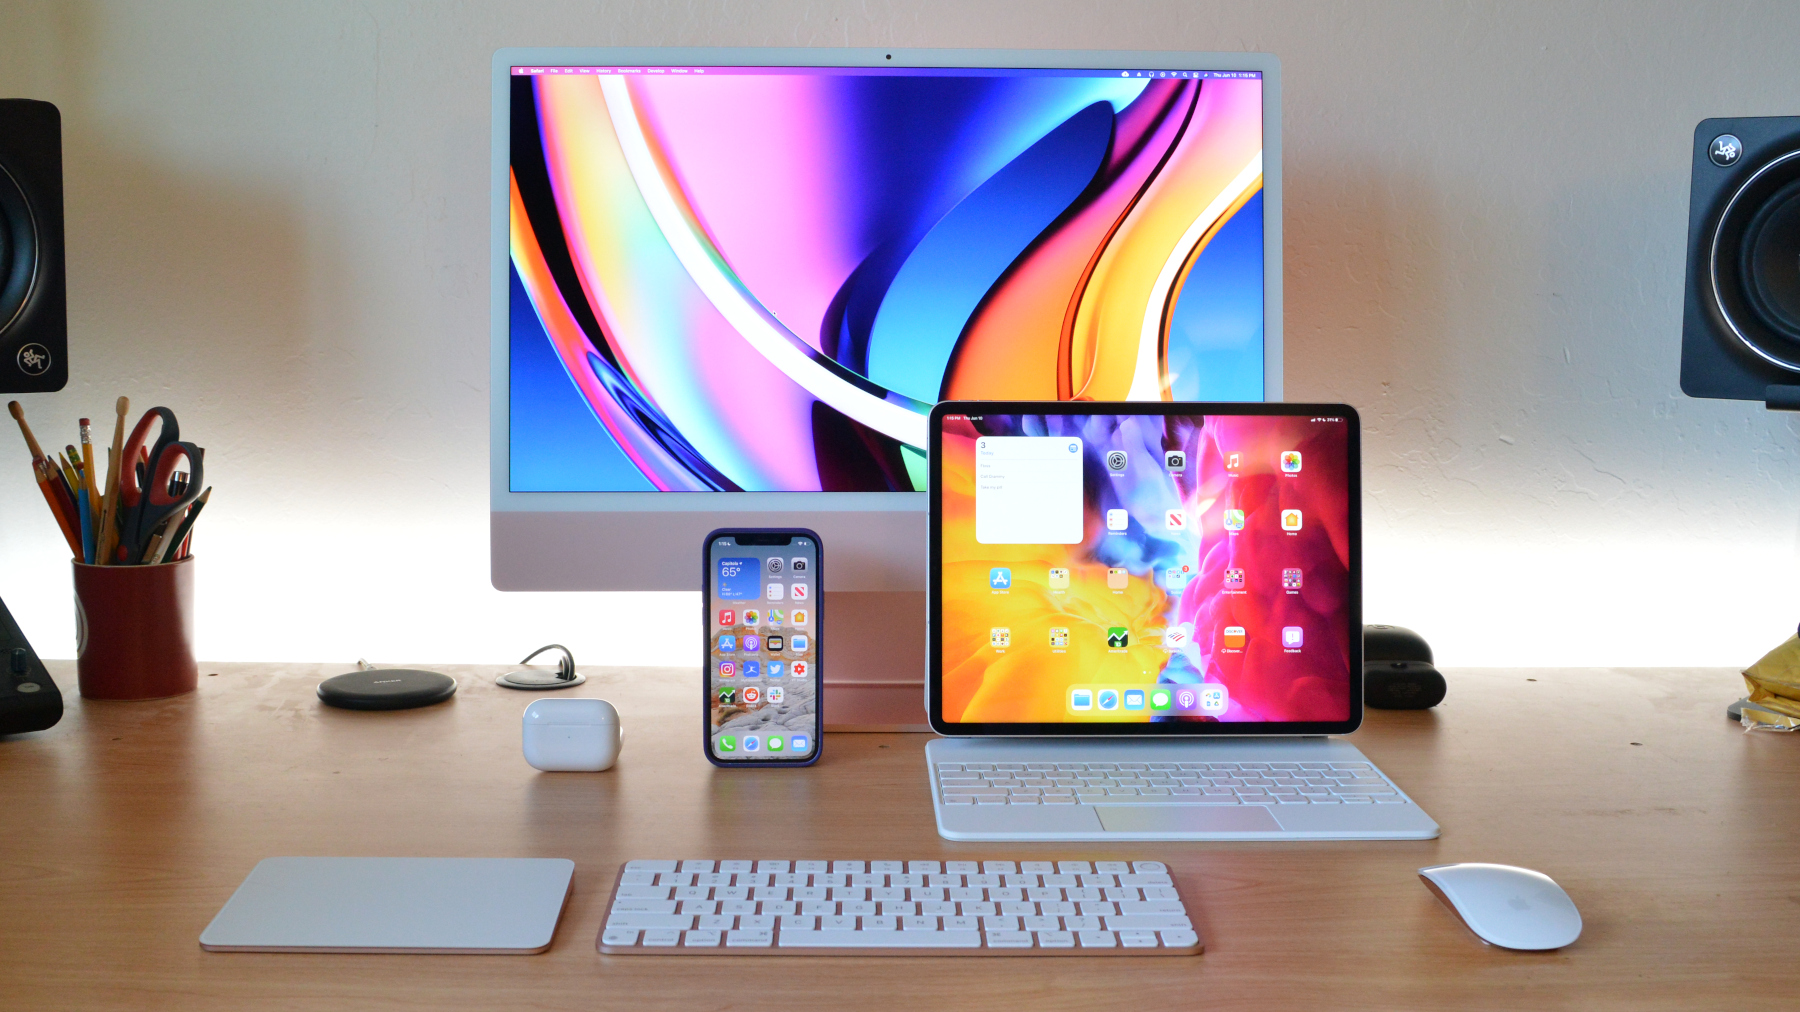 When will Apple Release the iPhone 13, AirPods 3, & Apple Watch Series 7? TWIA 8-27-21